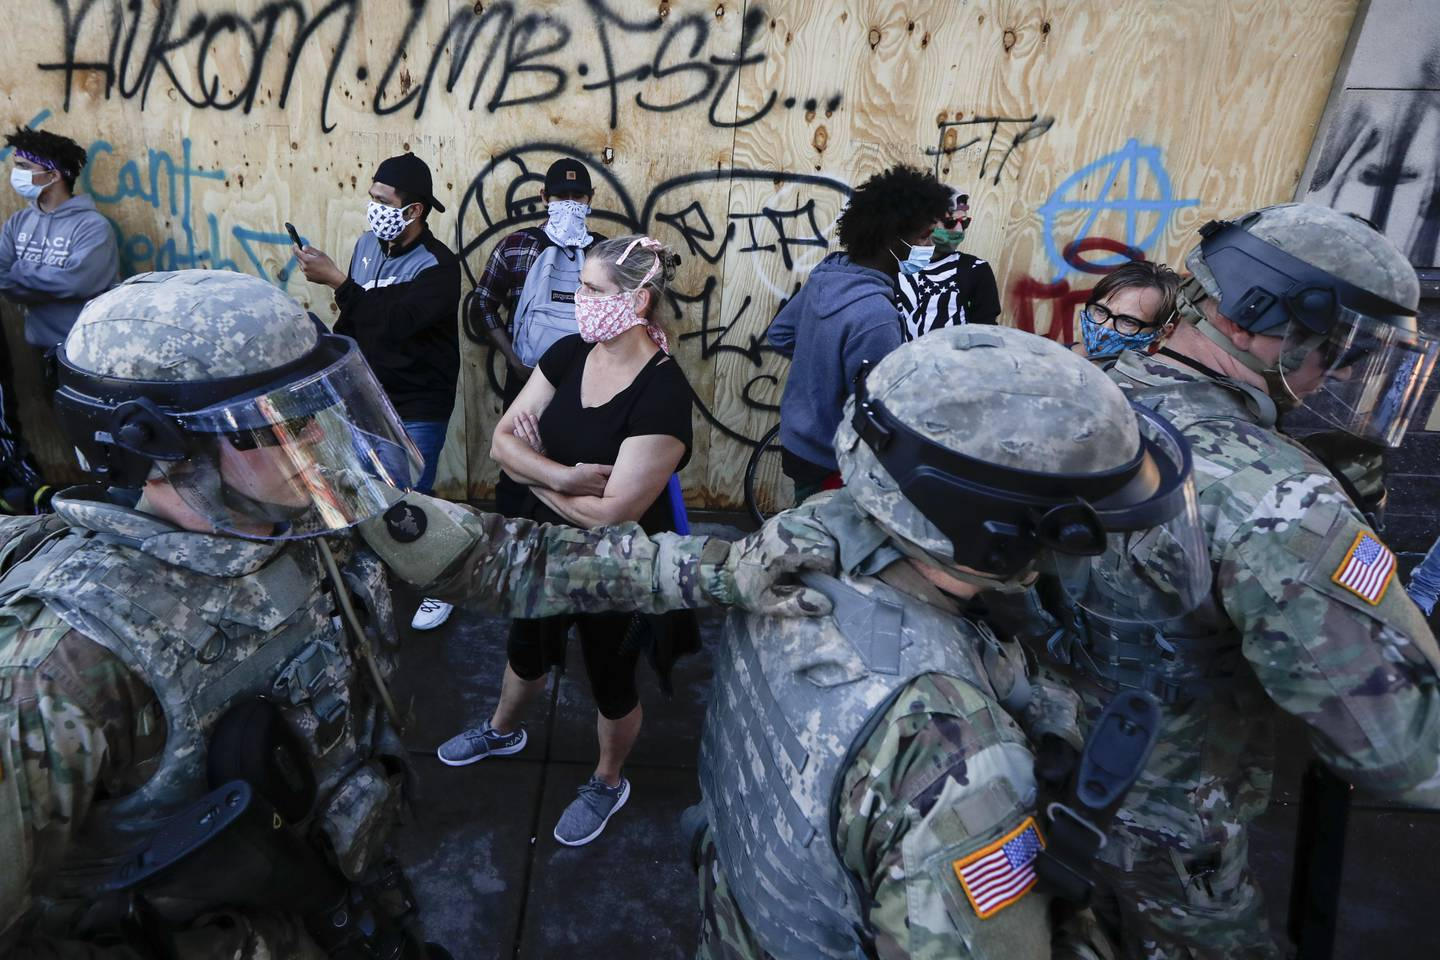 National Guard personnel return to their defensive position as protesters make room for them to fall back following a confrontation on East Lake Street, Friday, May 29, 2020, in St. Paul, Minn.